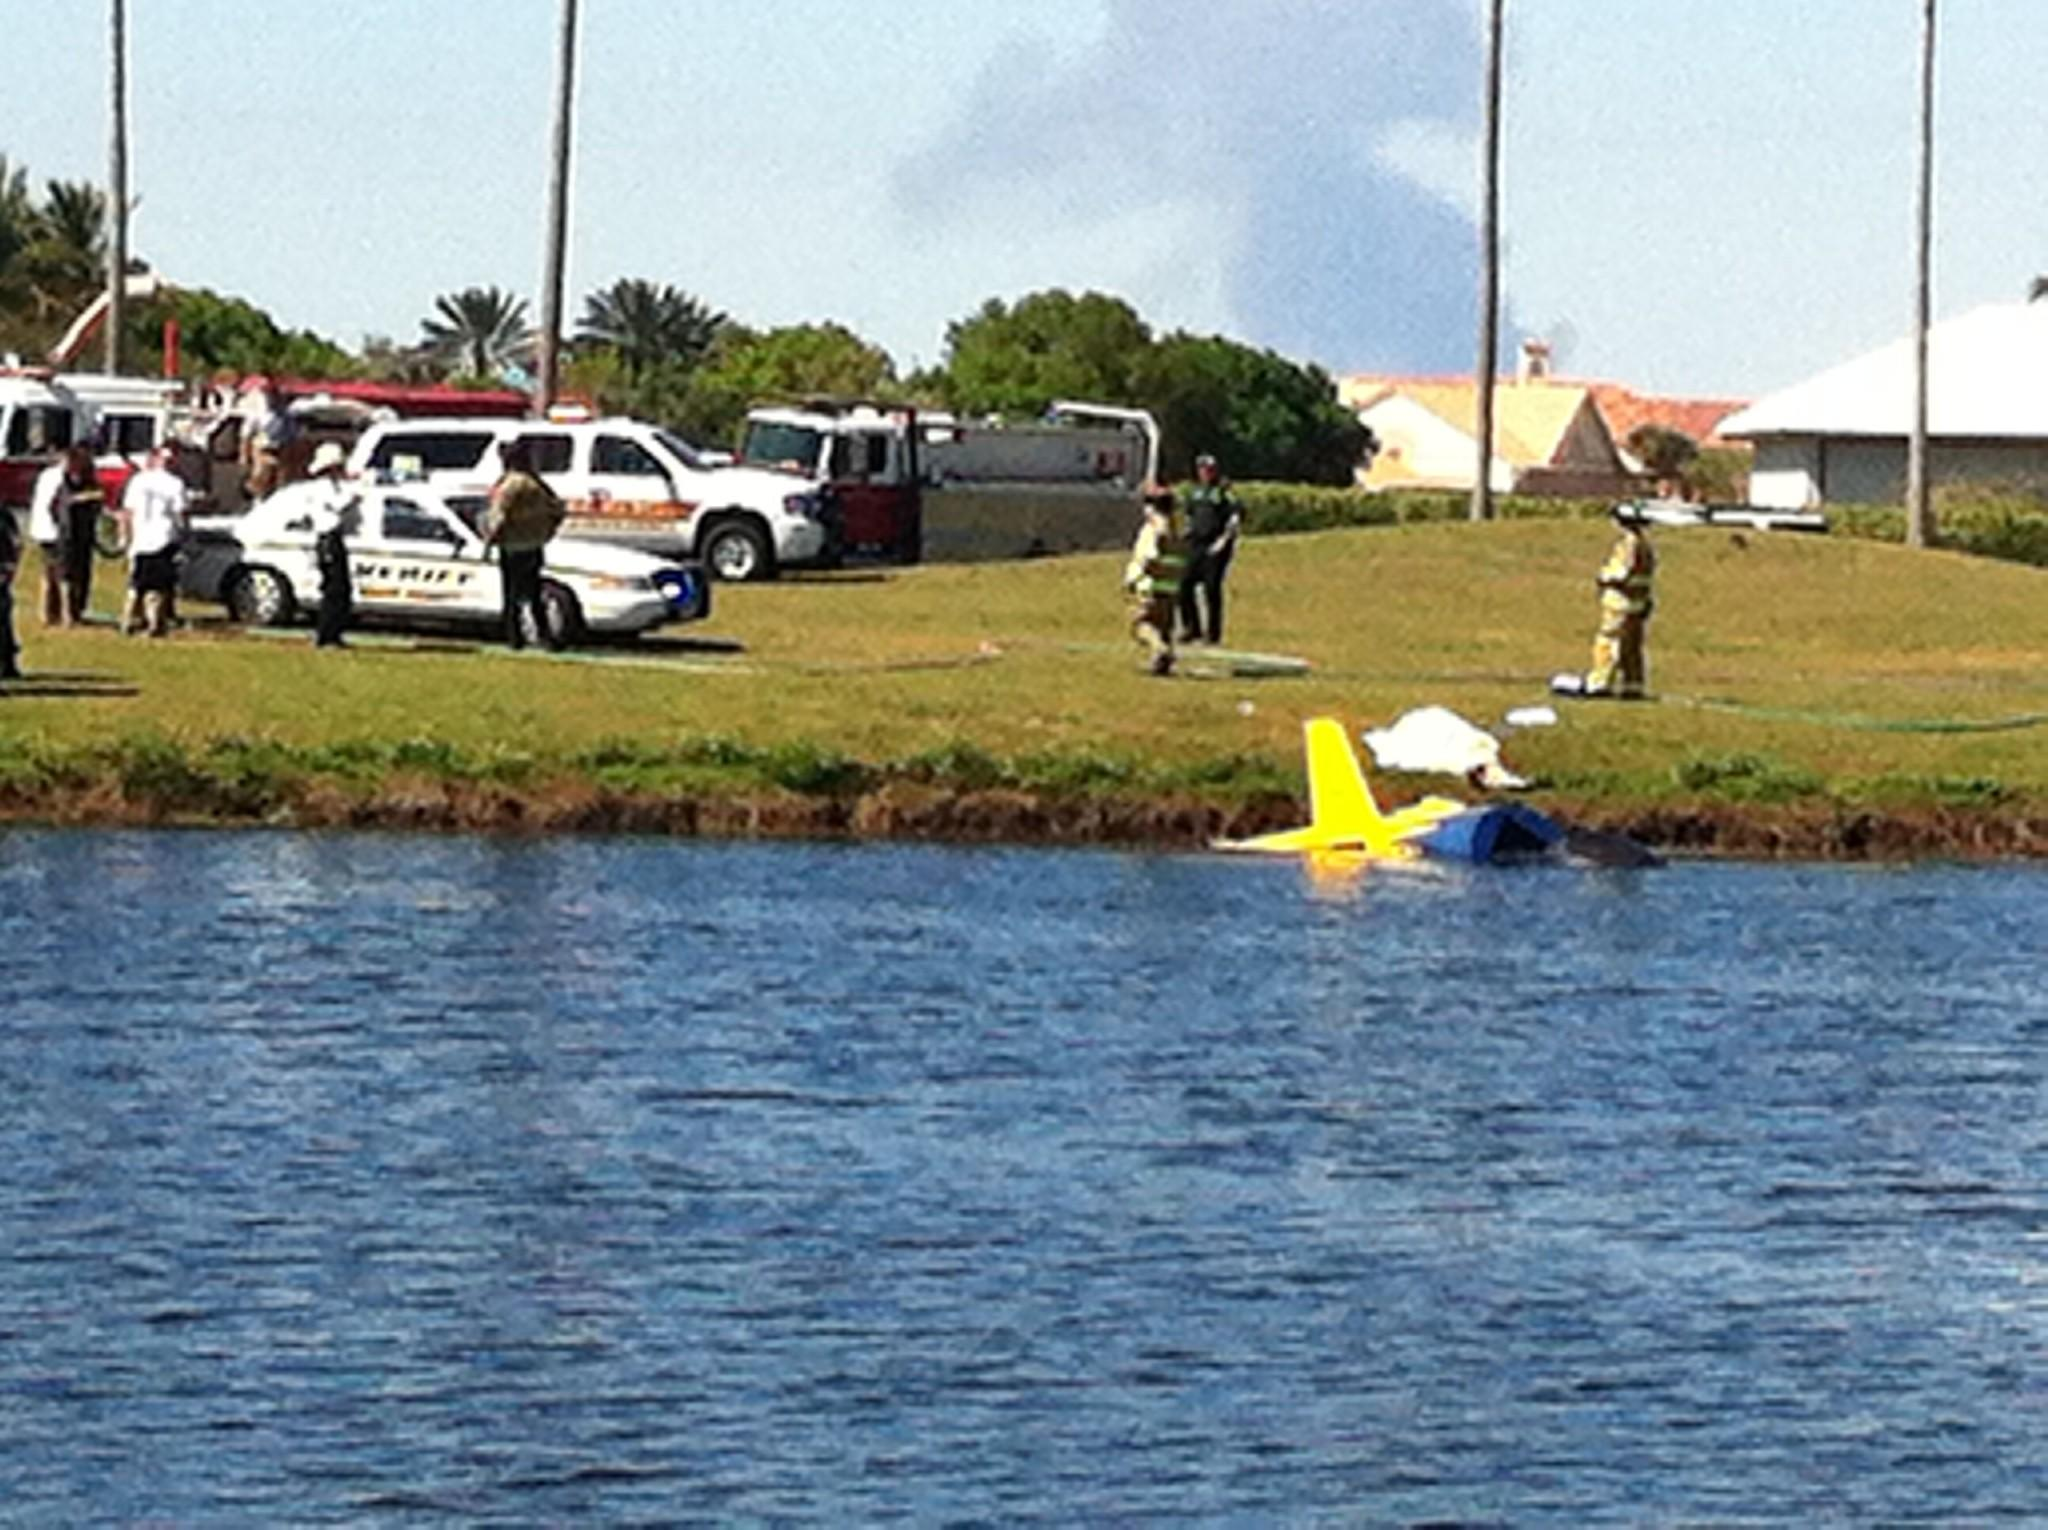 The tail of the Sonex aircraft can be seen at the edge of a lake in Wellington. The FAA said the homebuilt aircraft crashed while the pilot was practicing landings and takeoffs at the Wellington Aero Club.